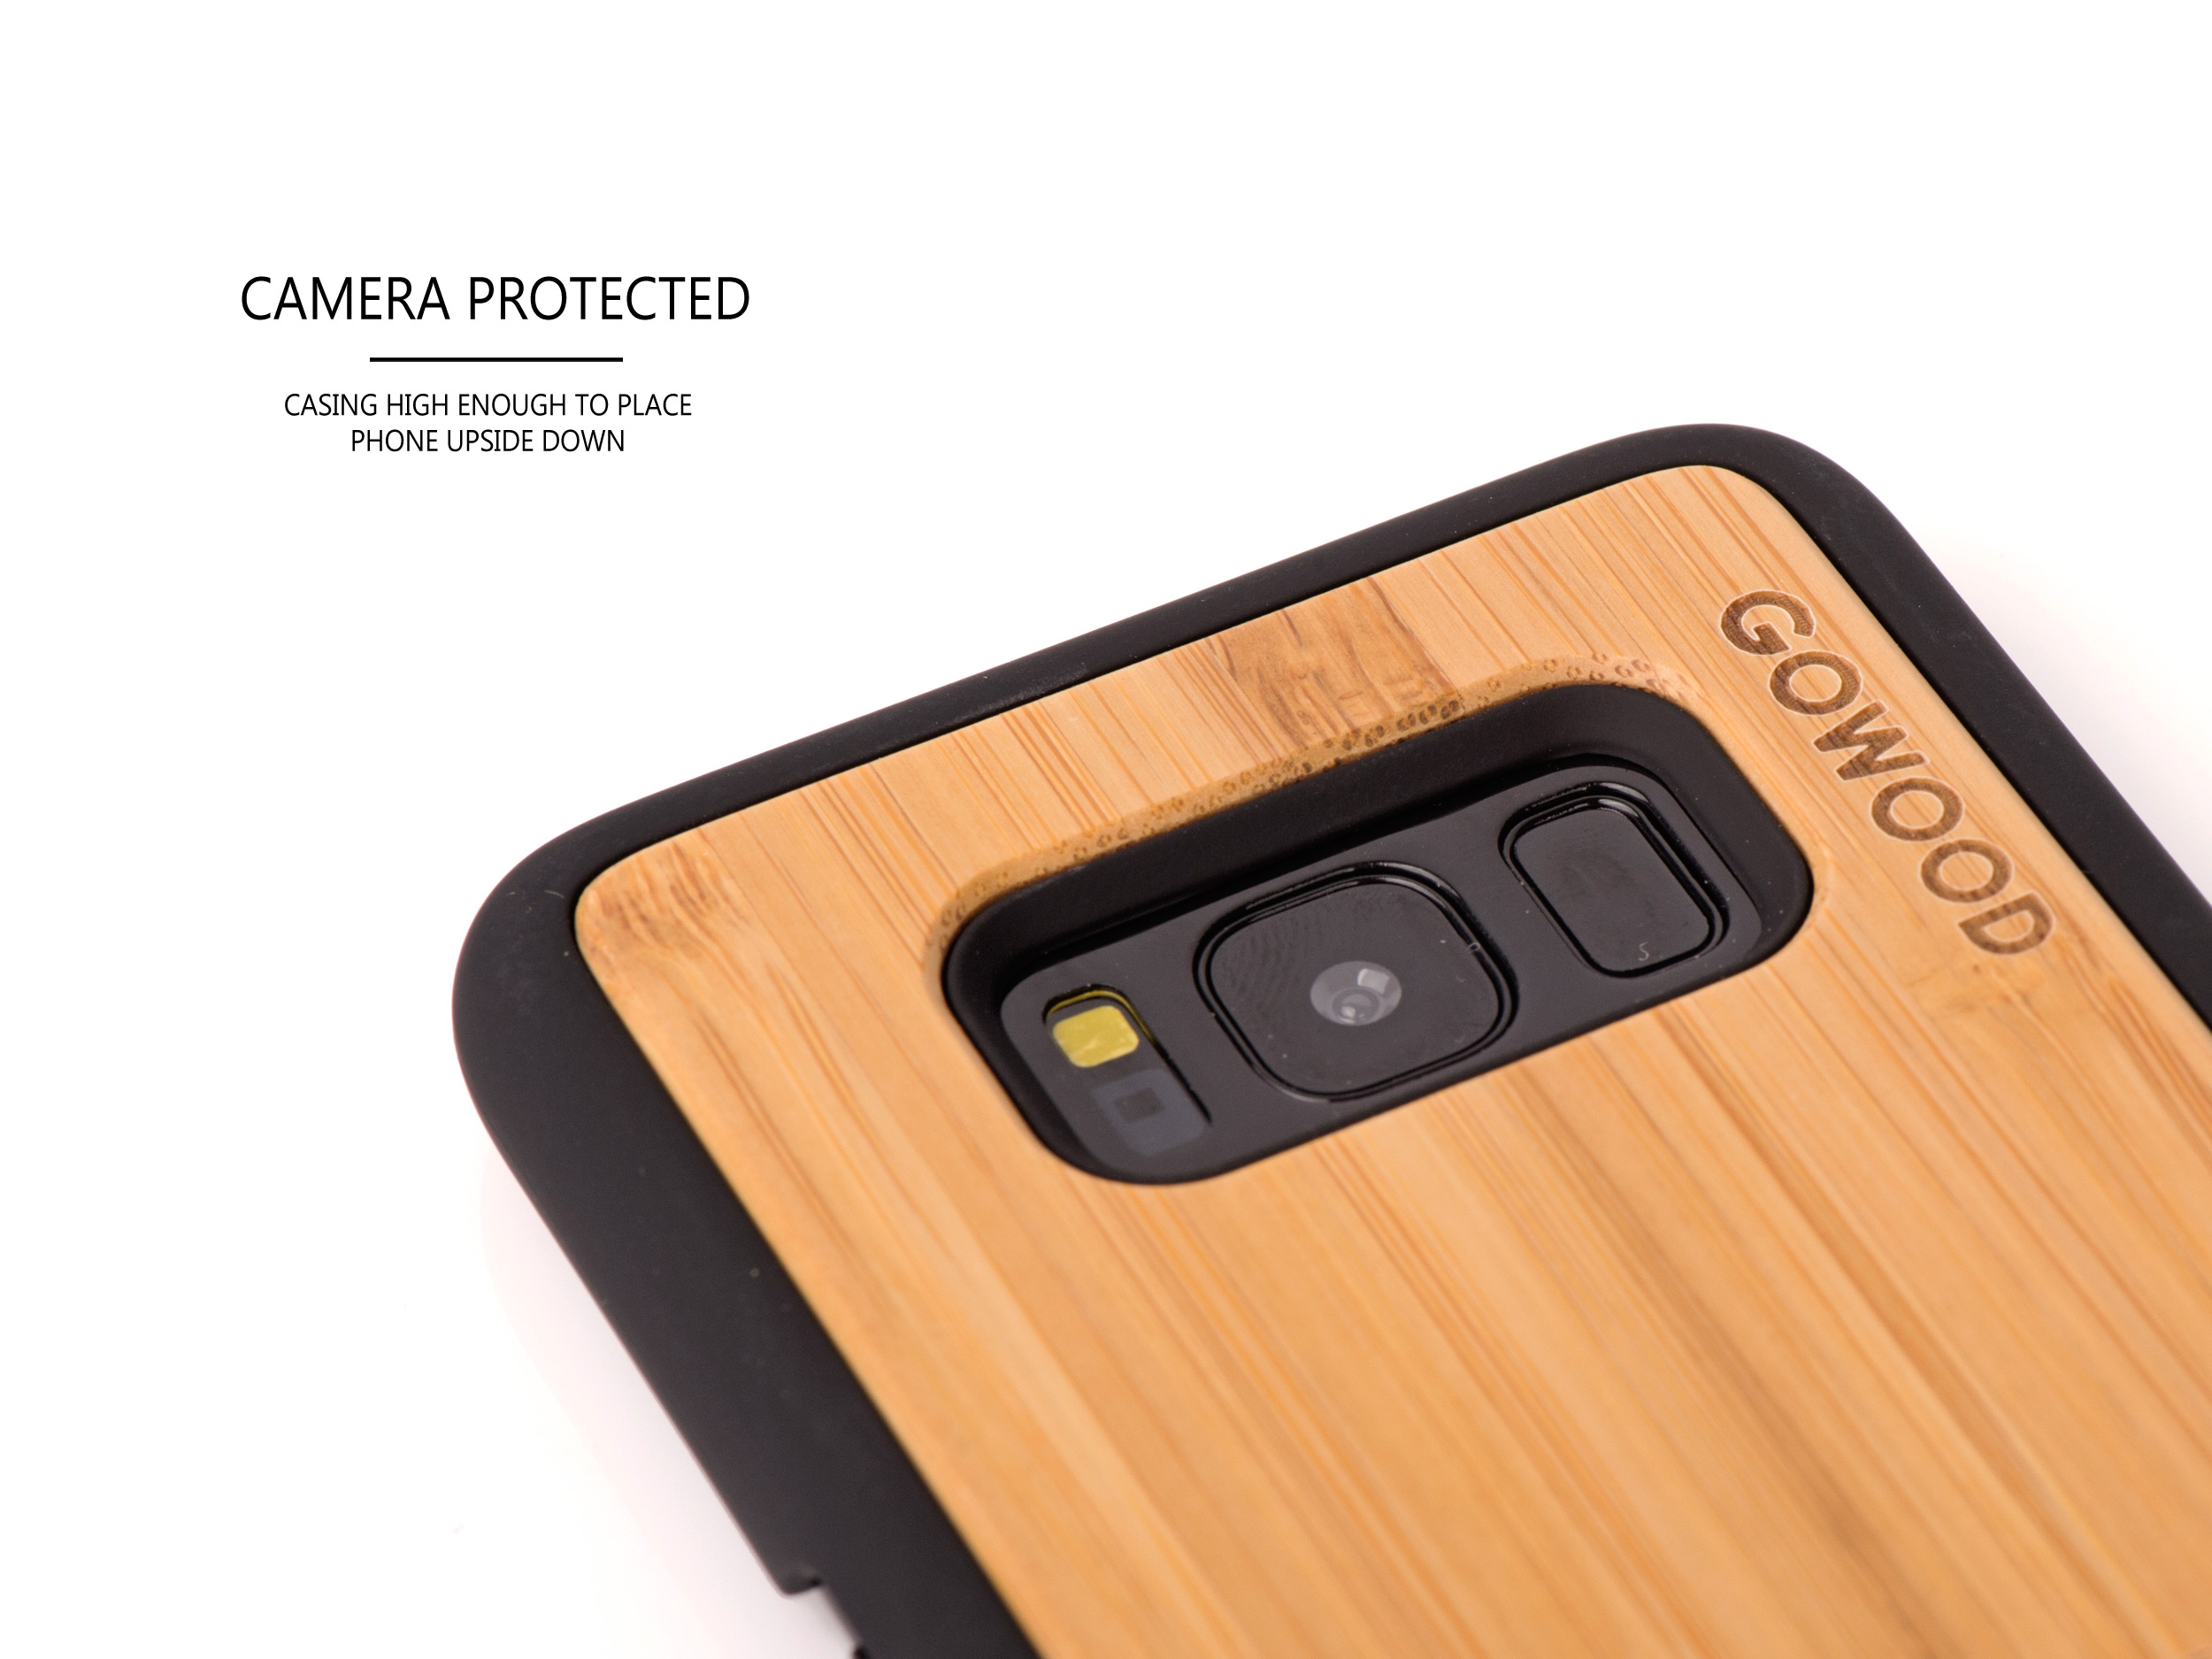 Samsung Galaxy S8 wood case - camera